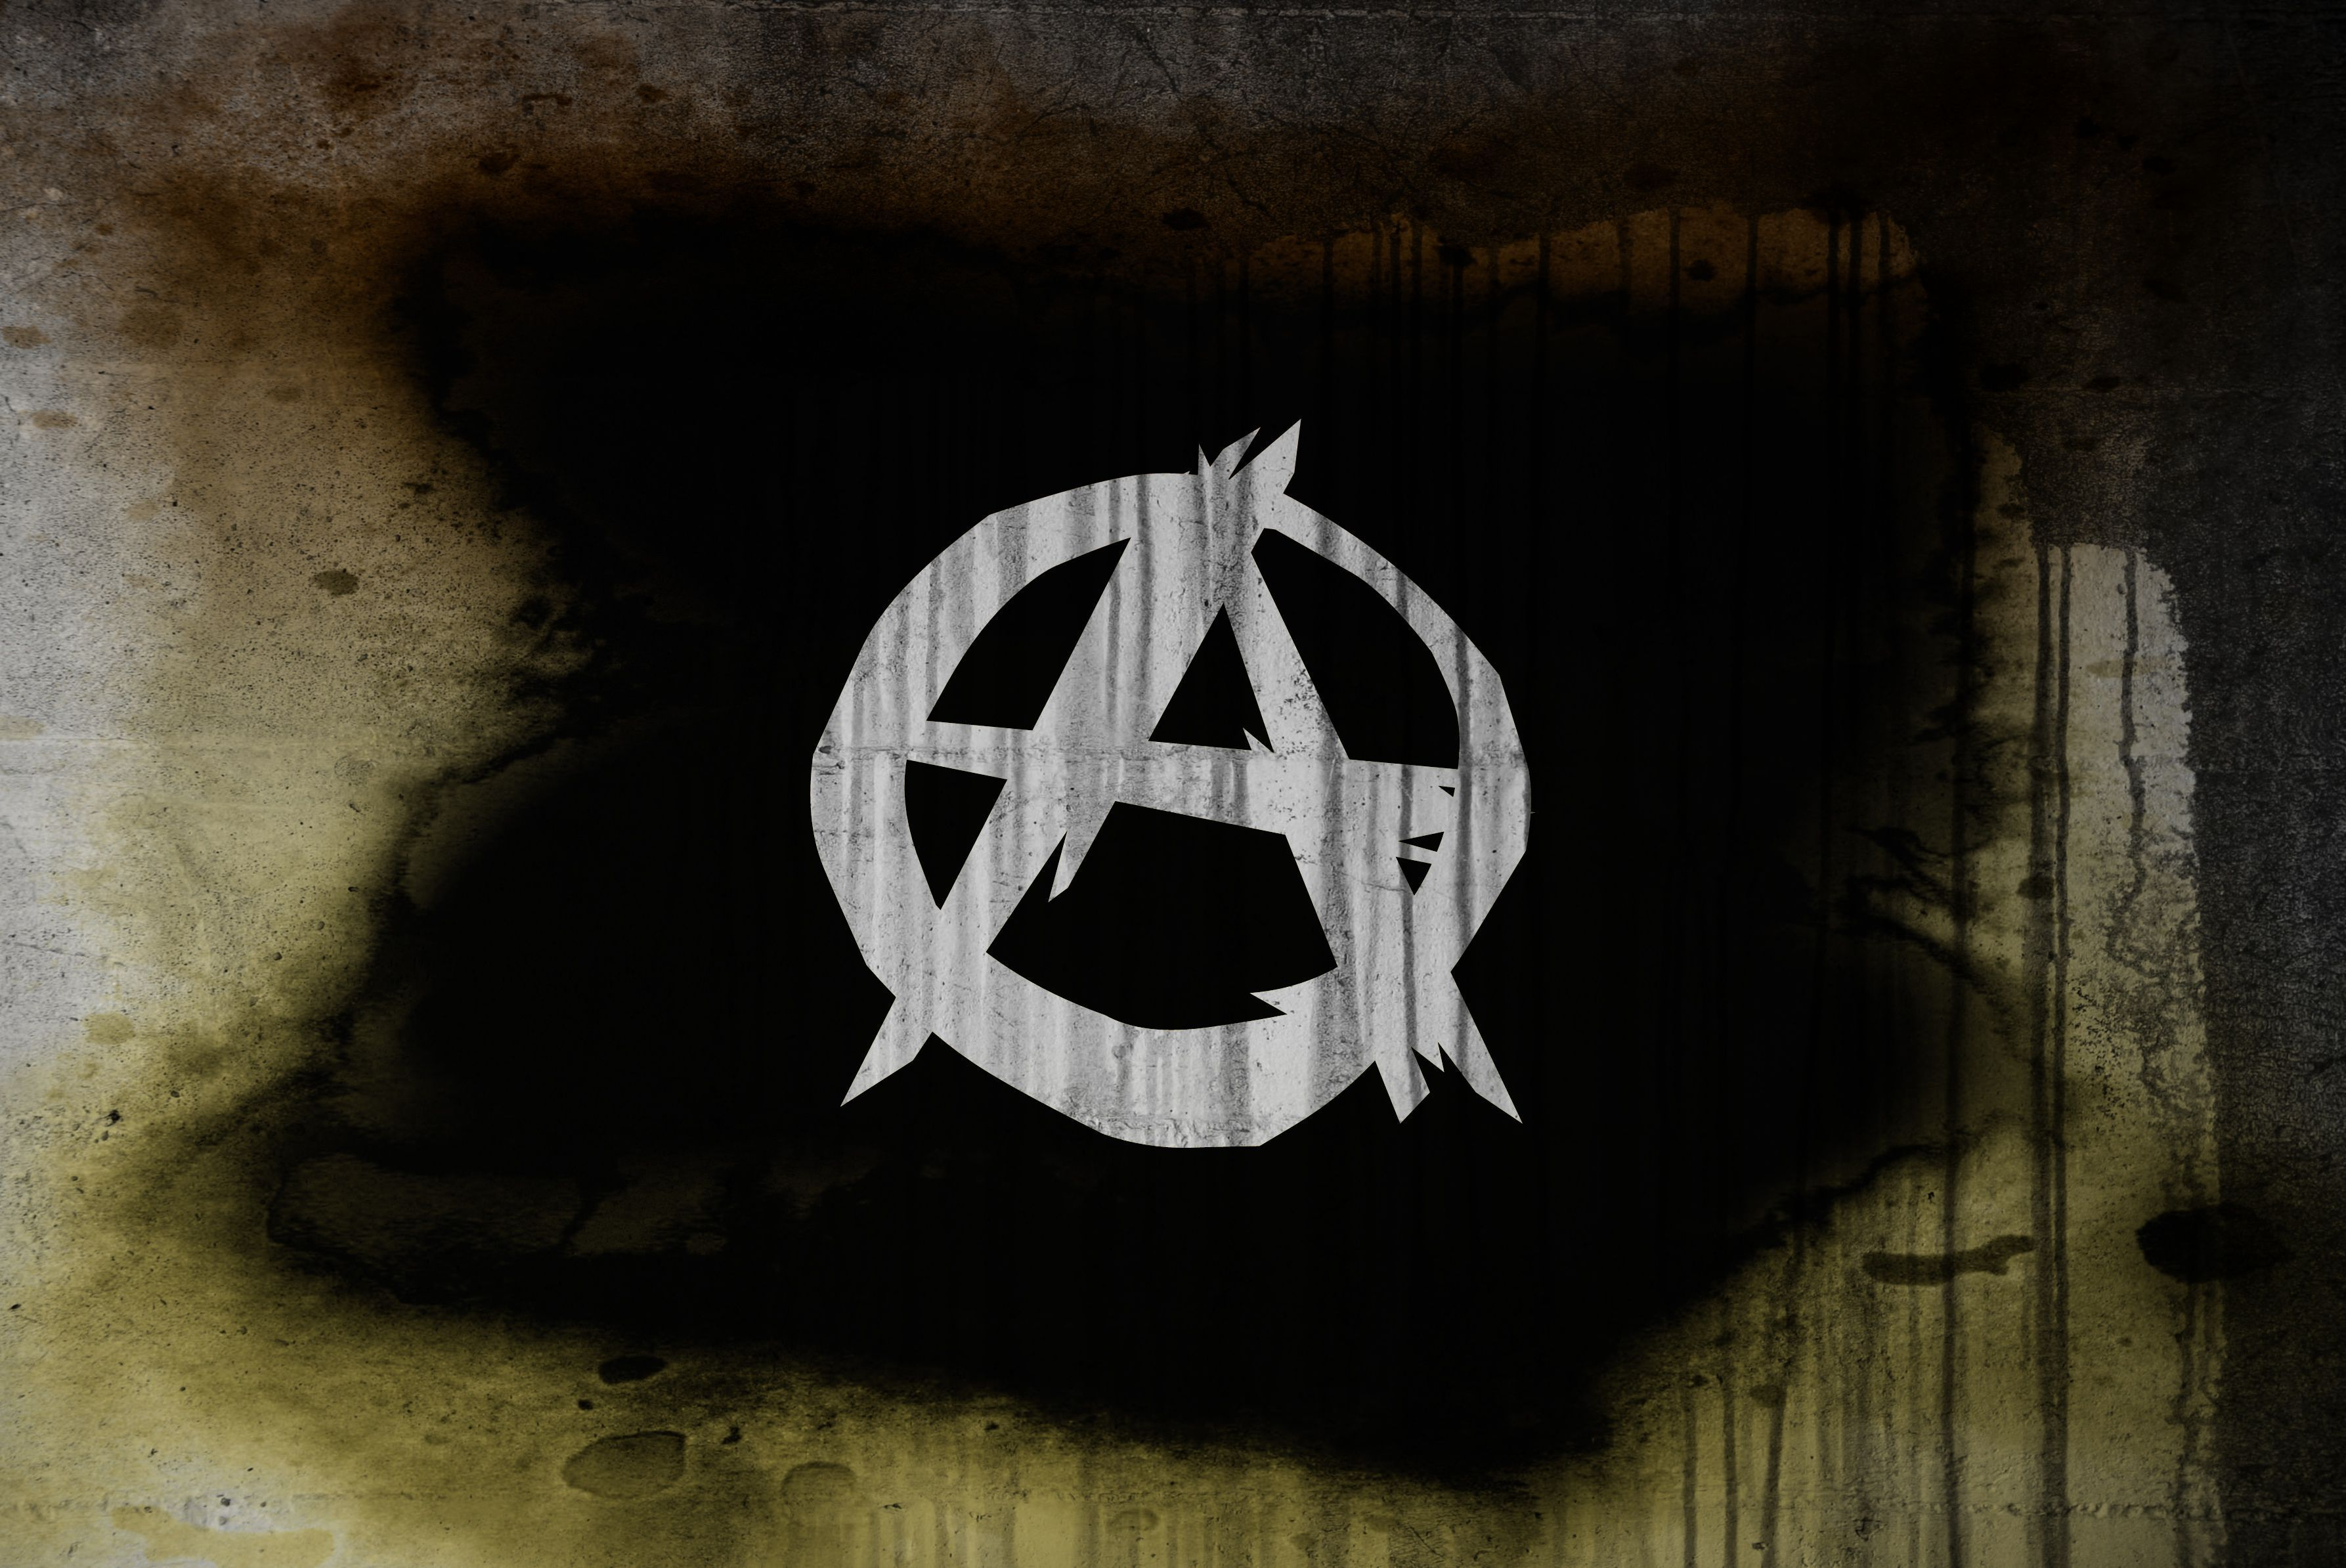 Anarchy Wallpaper Pack